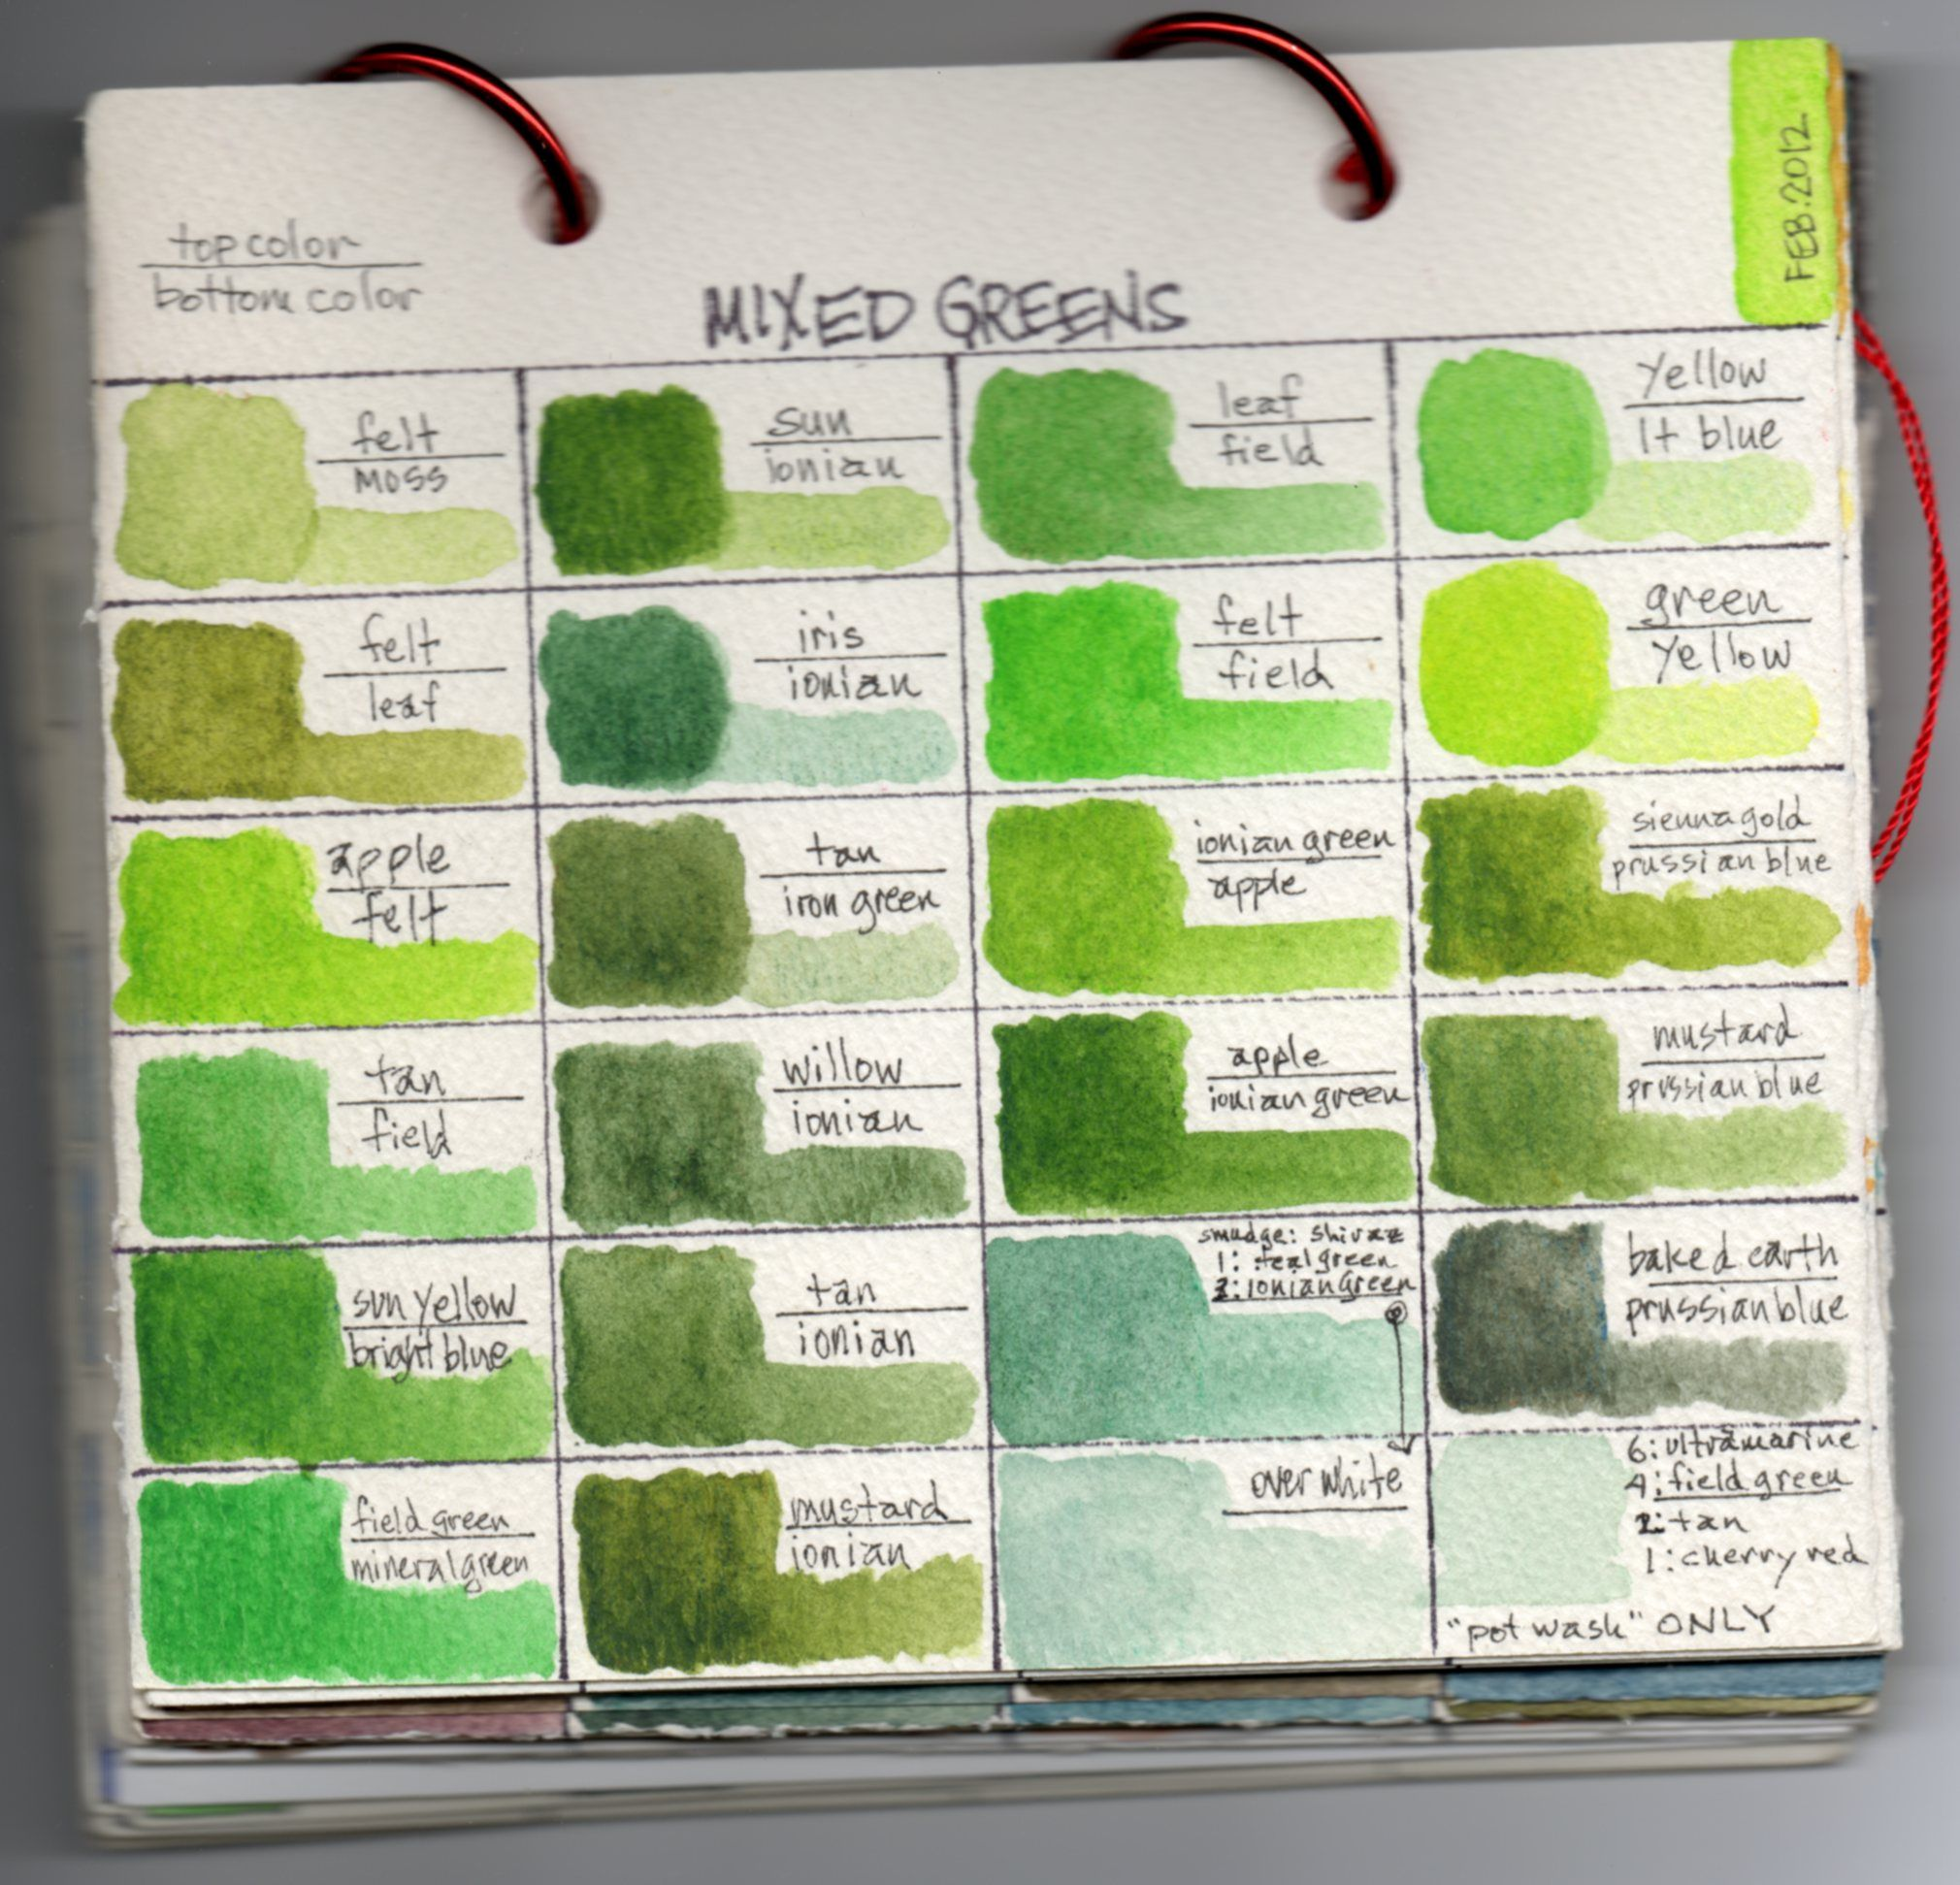 Mixed greens watercolour chart mbvarley water colours how to make a watercolour colour chart geenschuldenfo Image collections